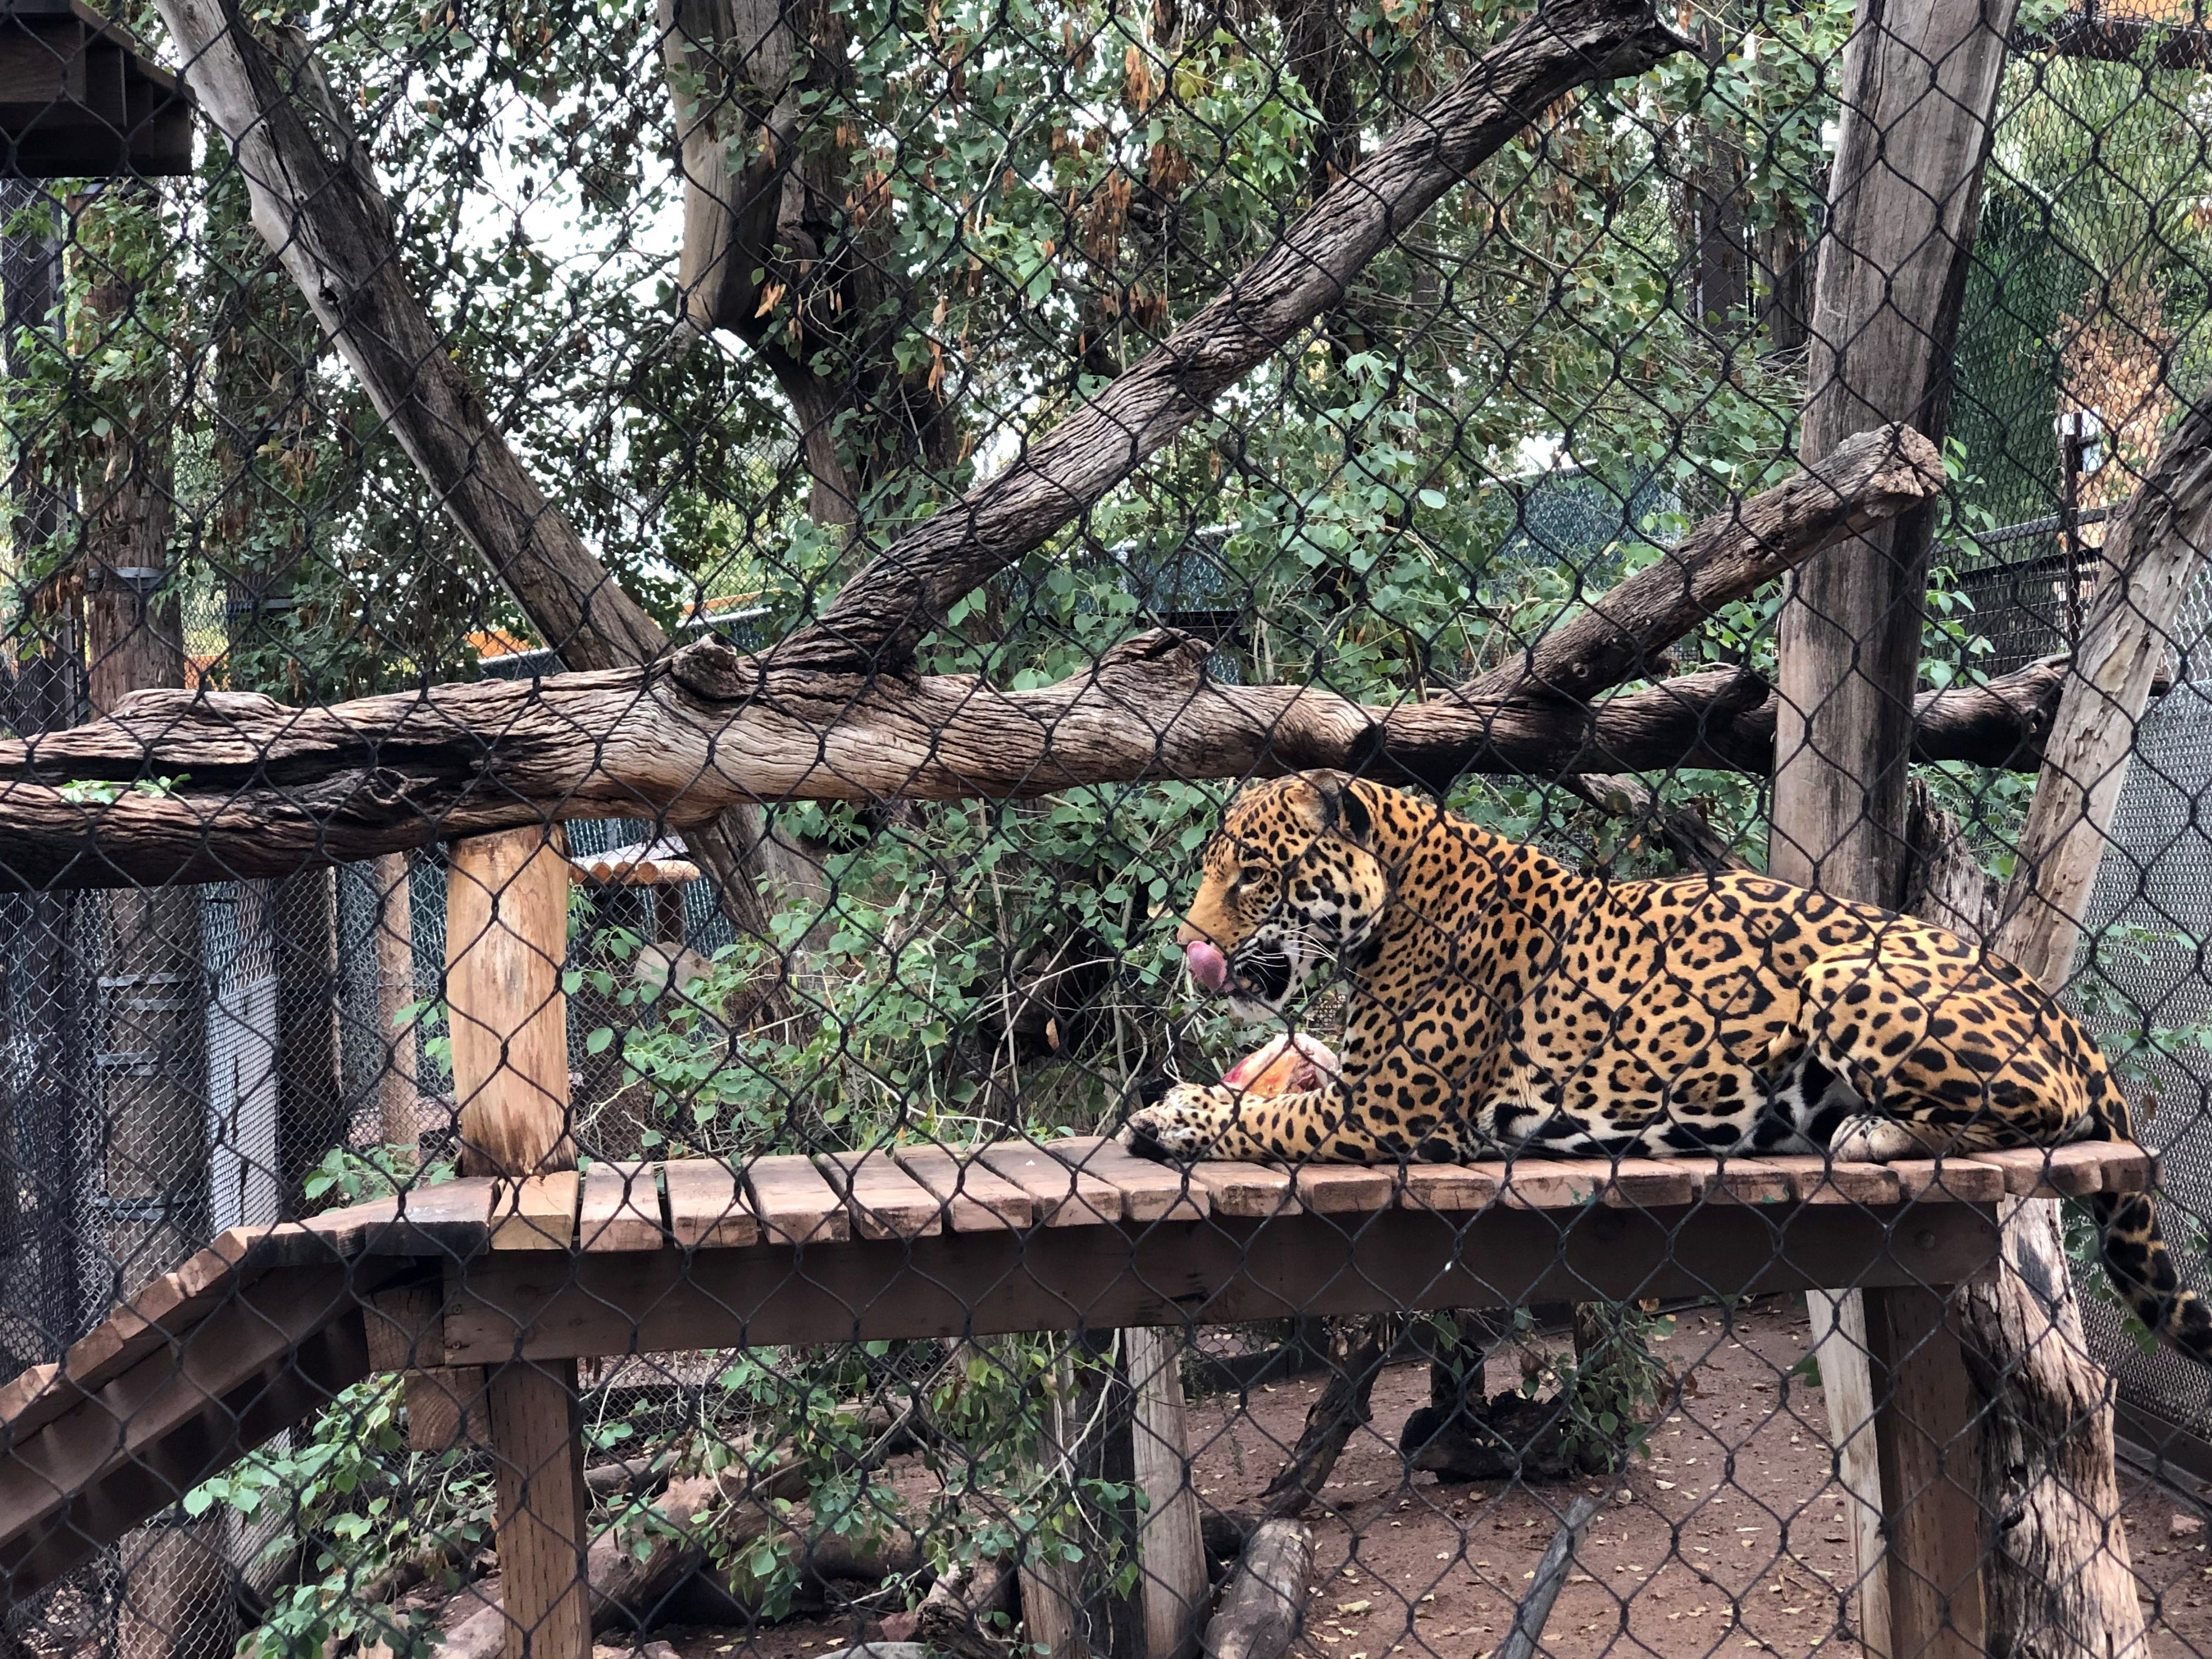 Harry, the Phoenix Zoo's male jaguar, picks at a bone in his enclosure on Tuesday, March 12.